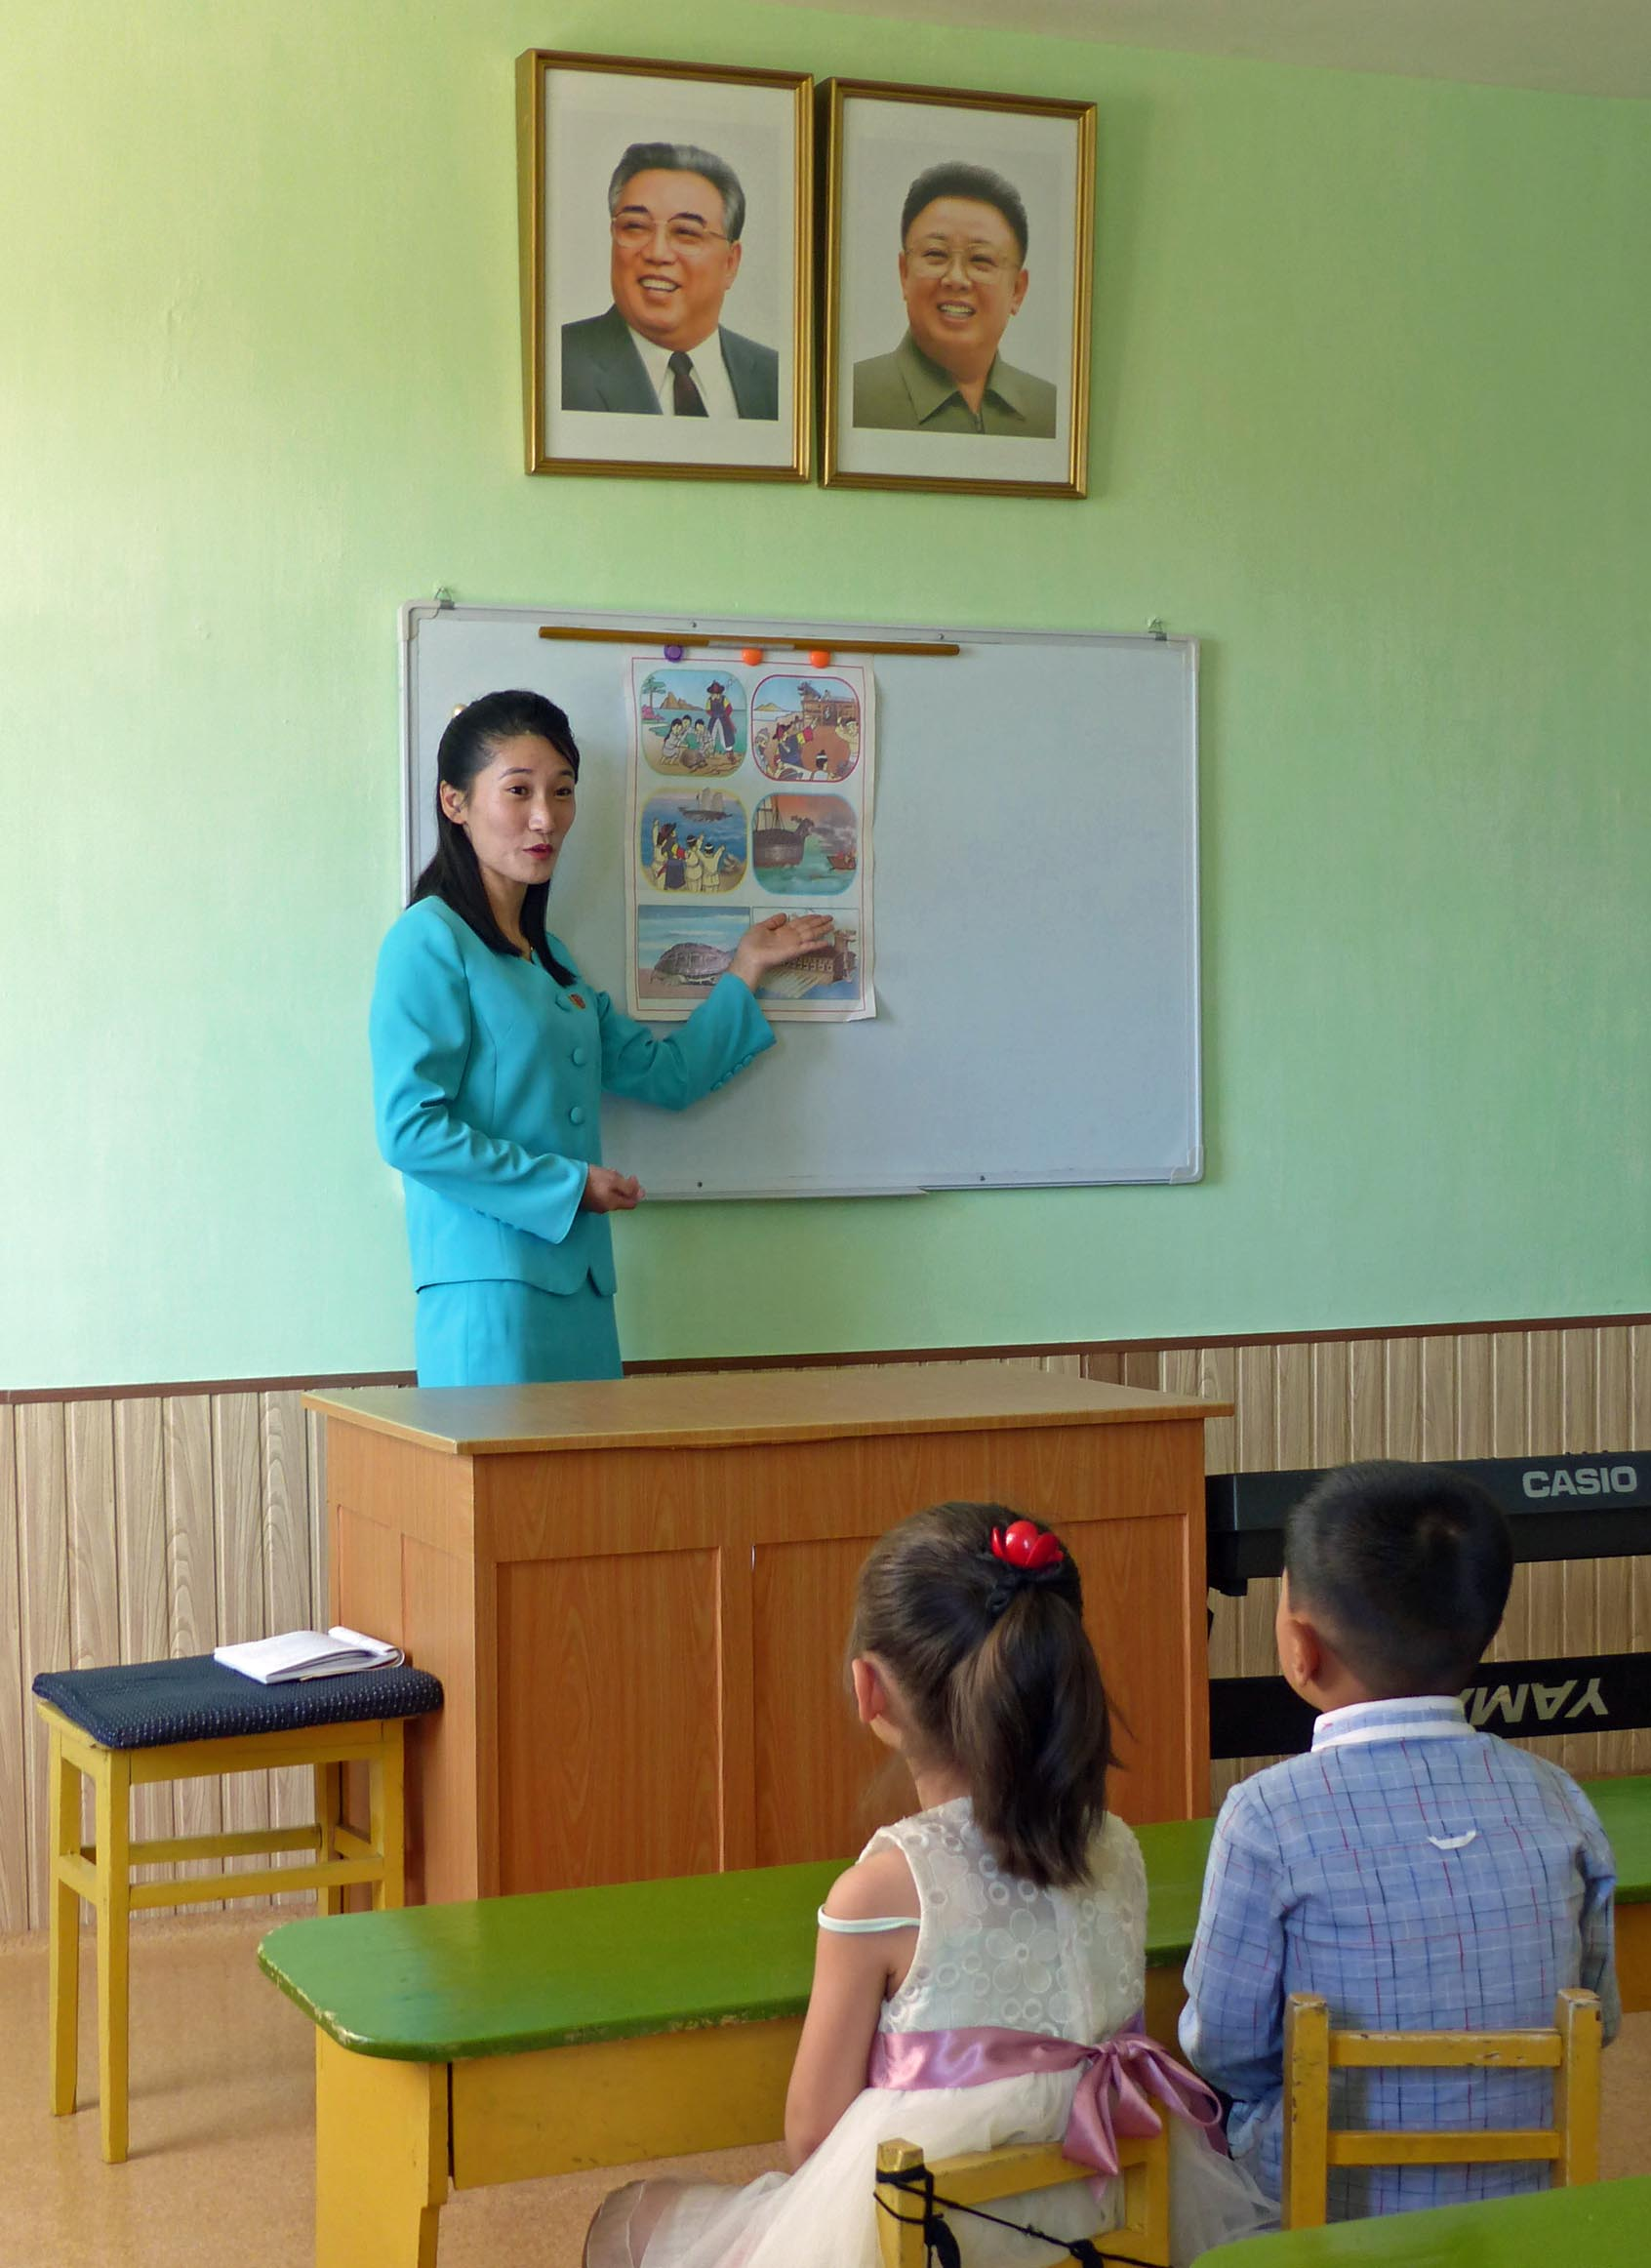 Lady teaching a class of small children